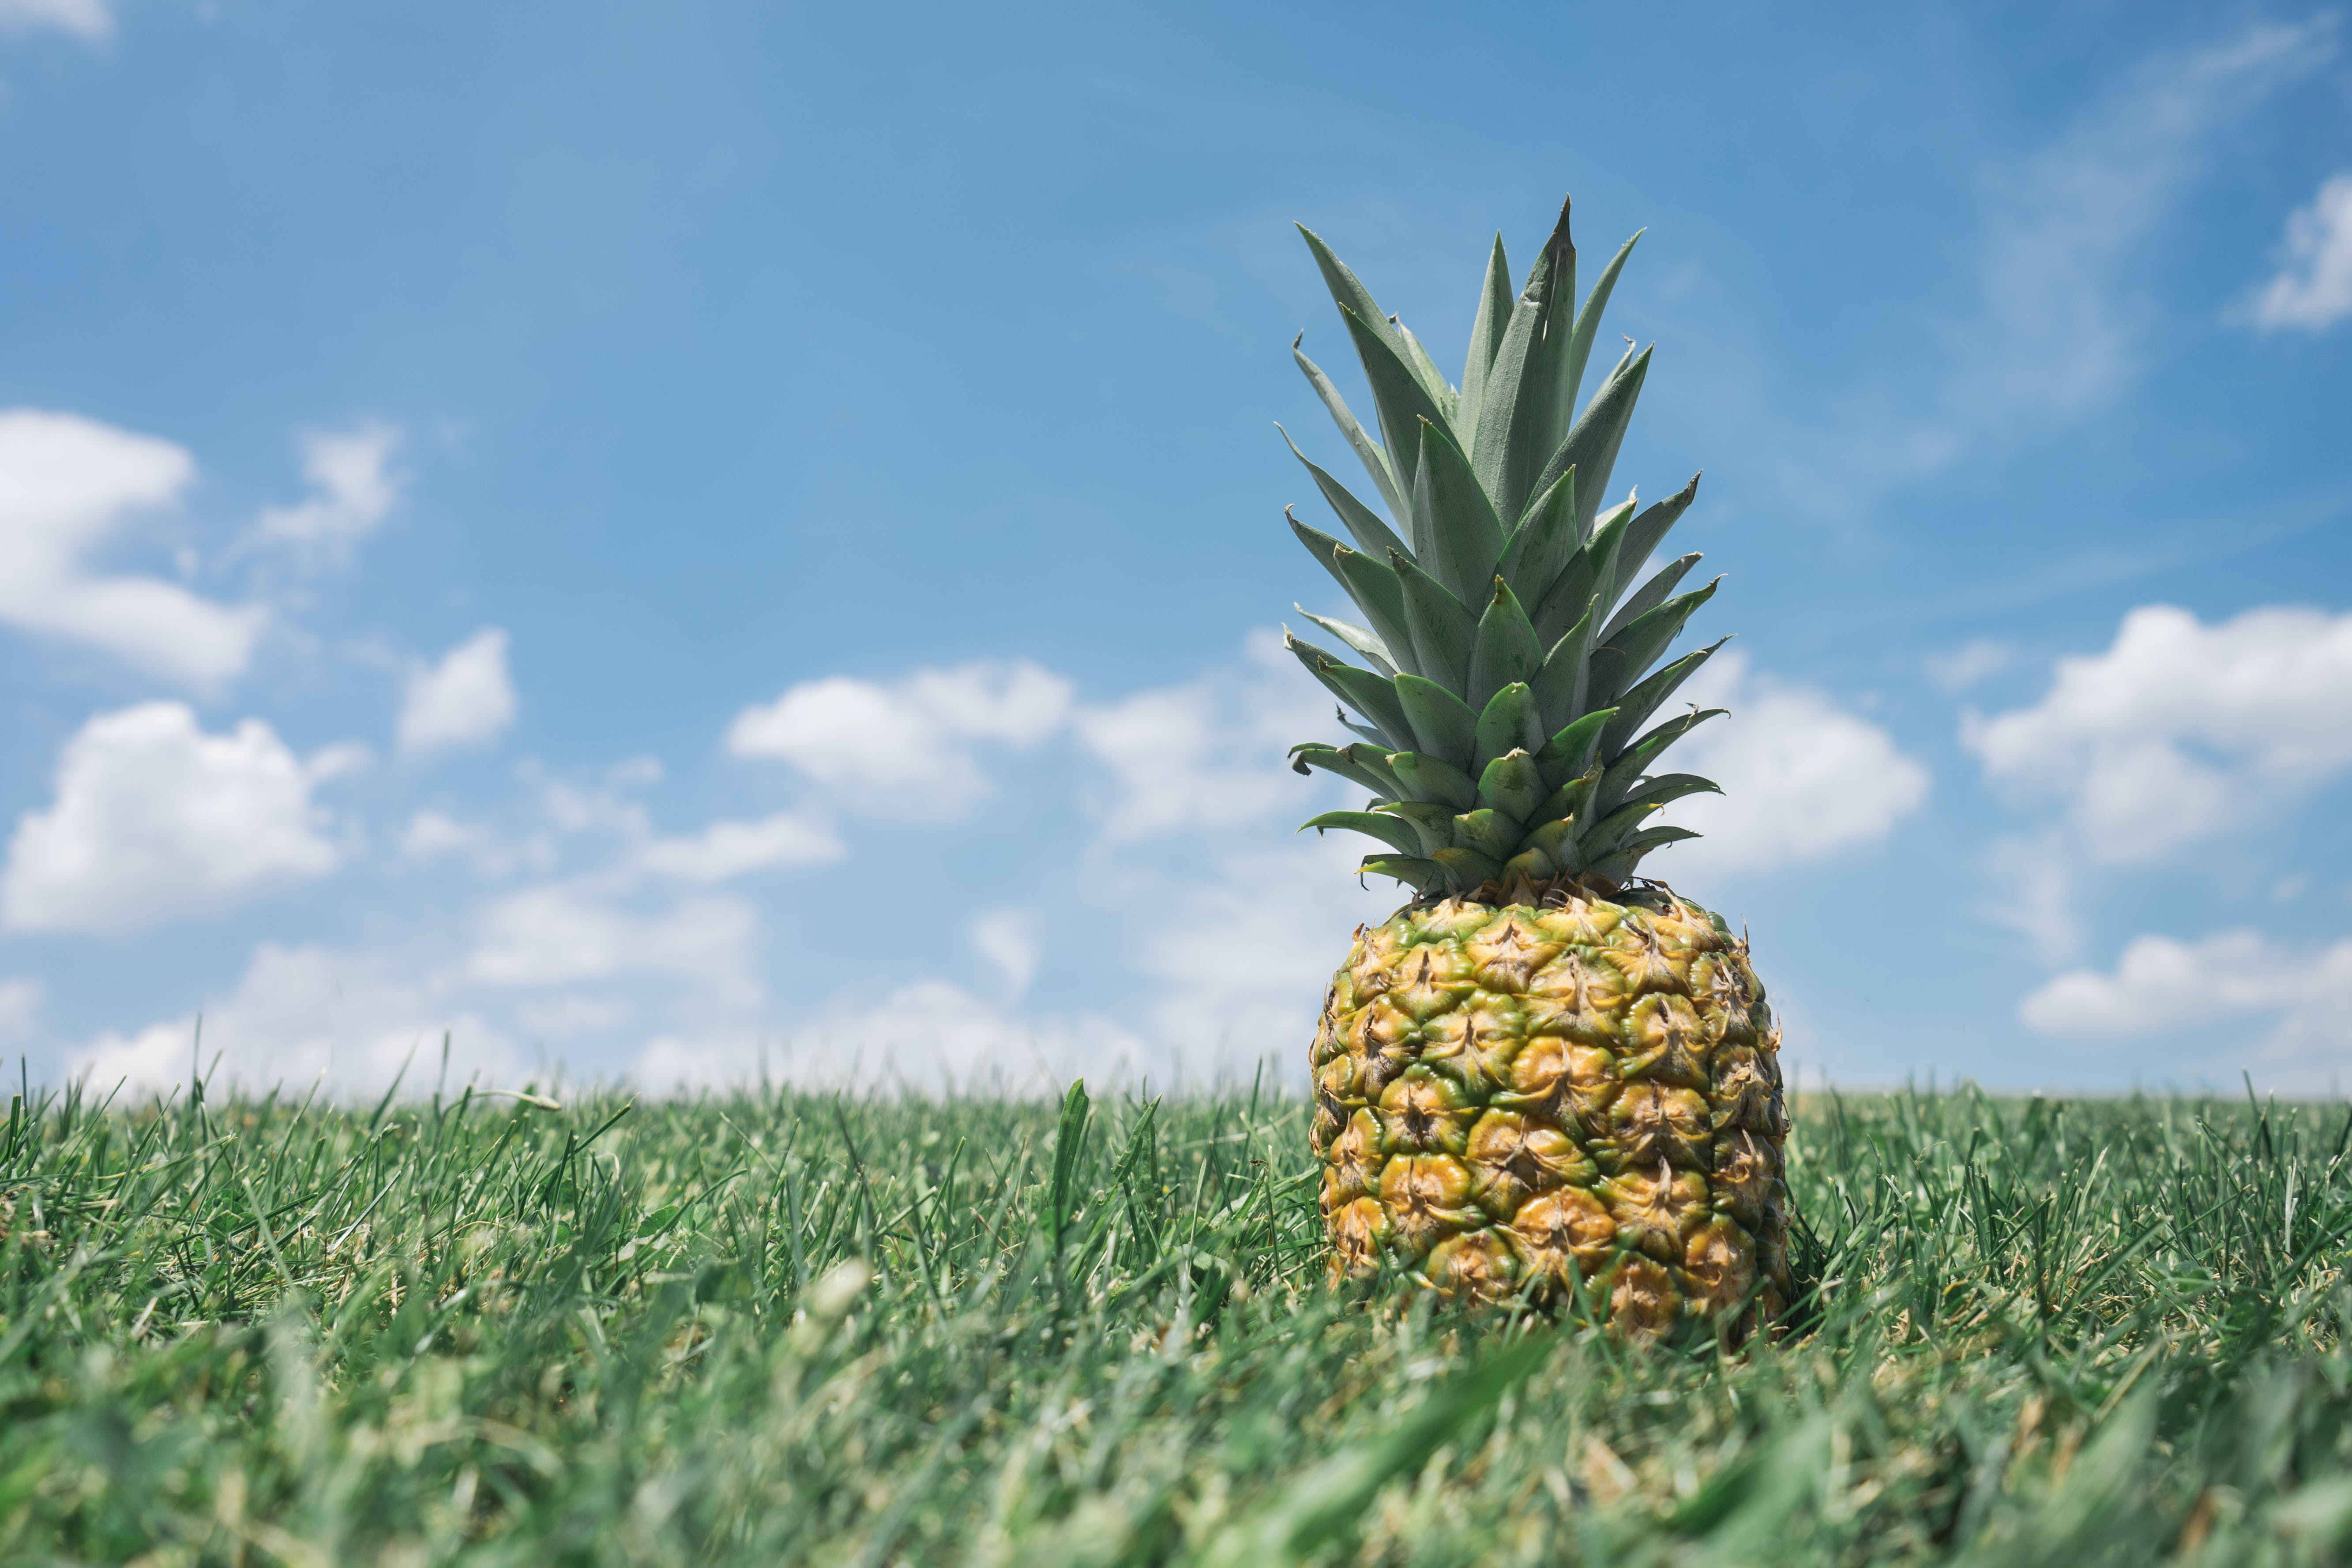 Close-up Photography of Pineapple on Grass